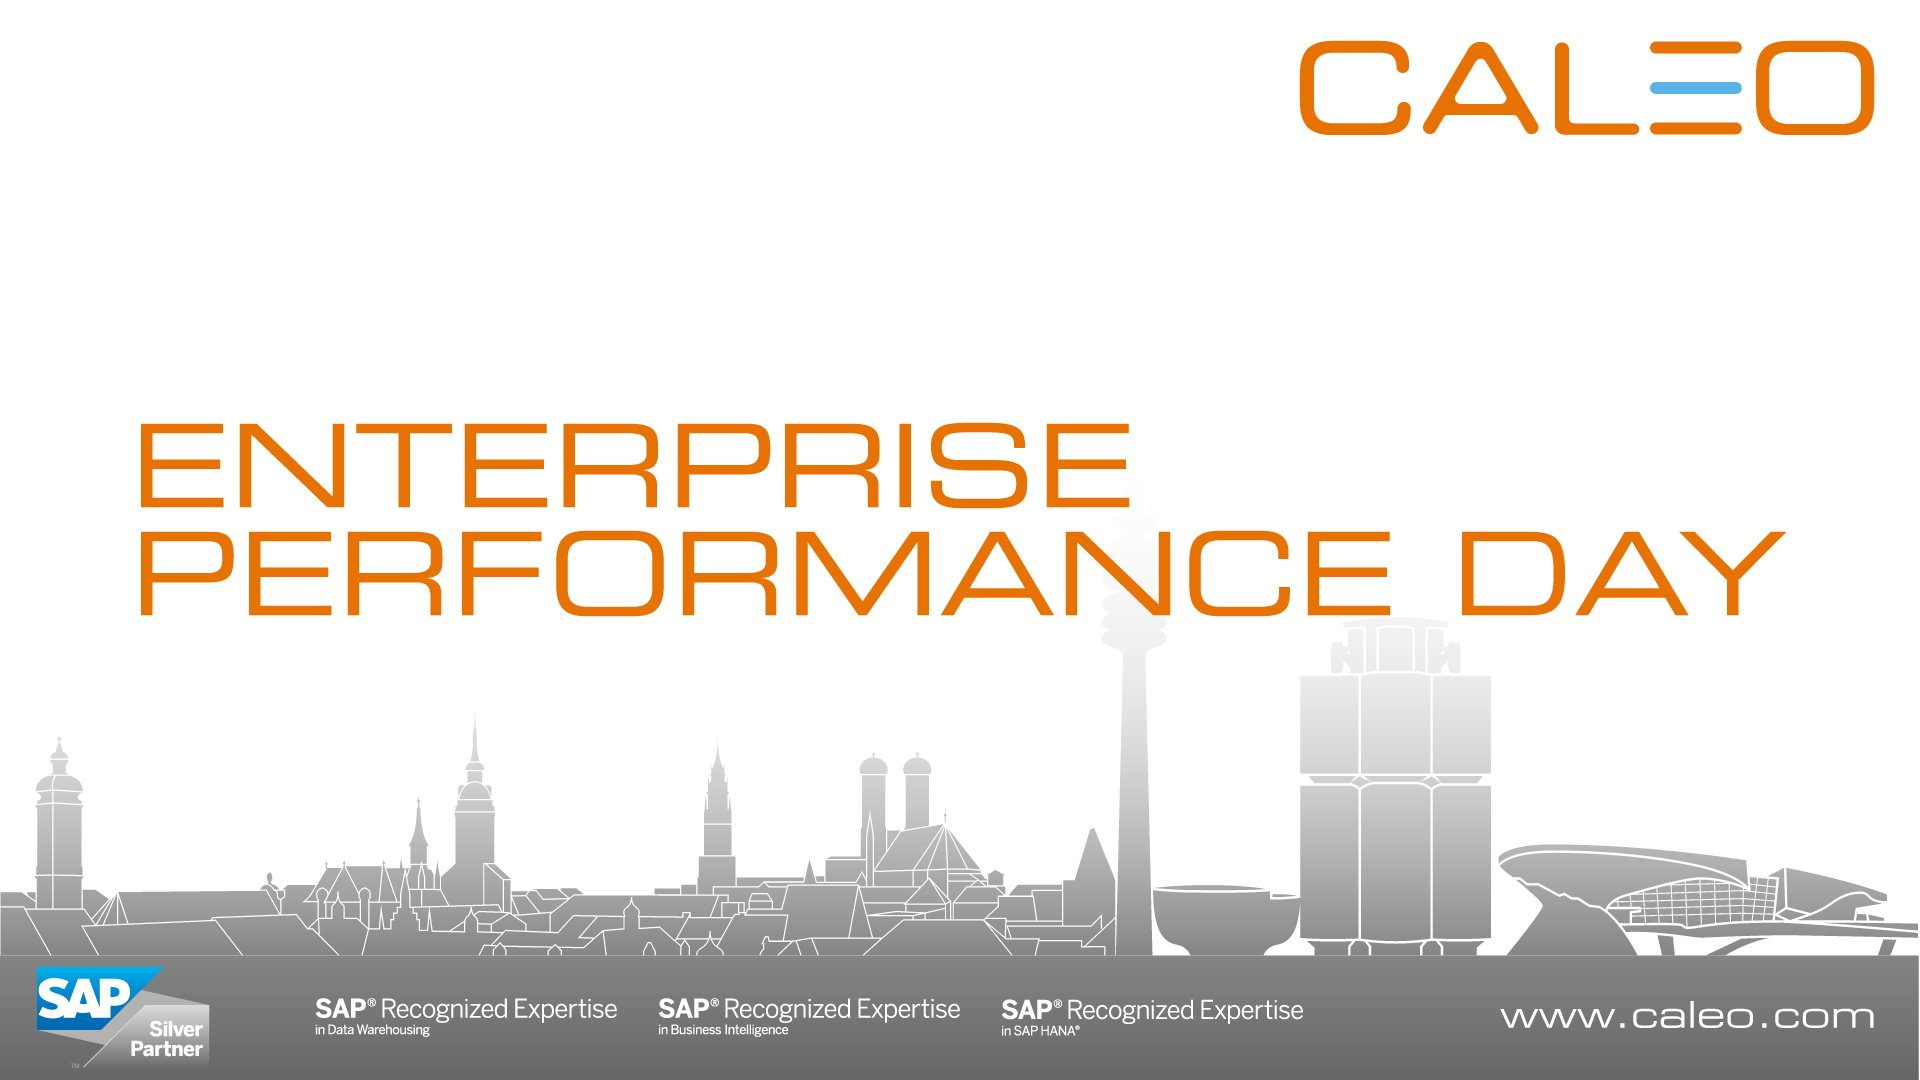 Enterprise Performance Day 2018 - Caleo